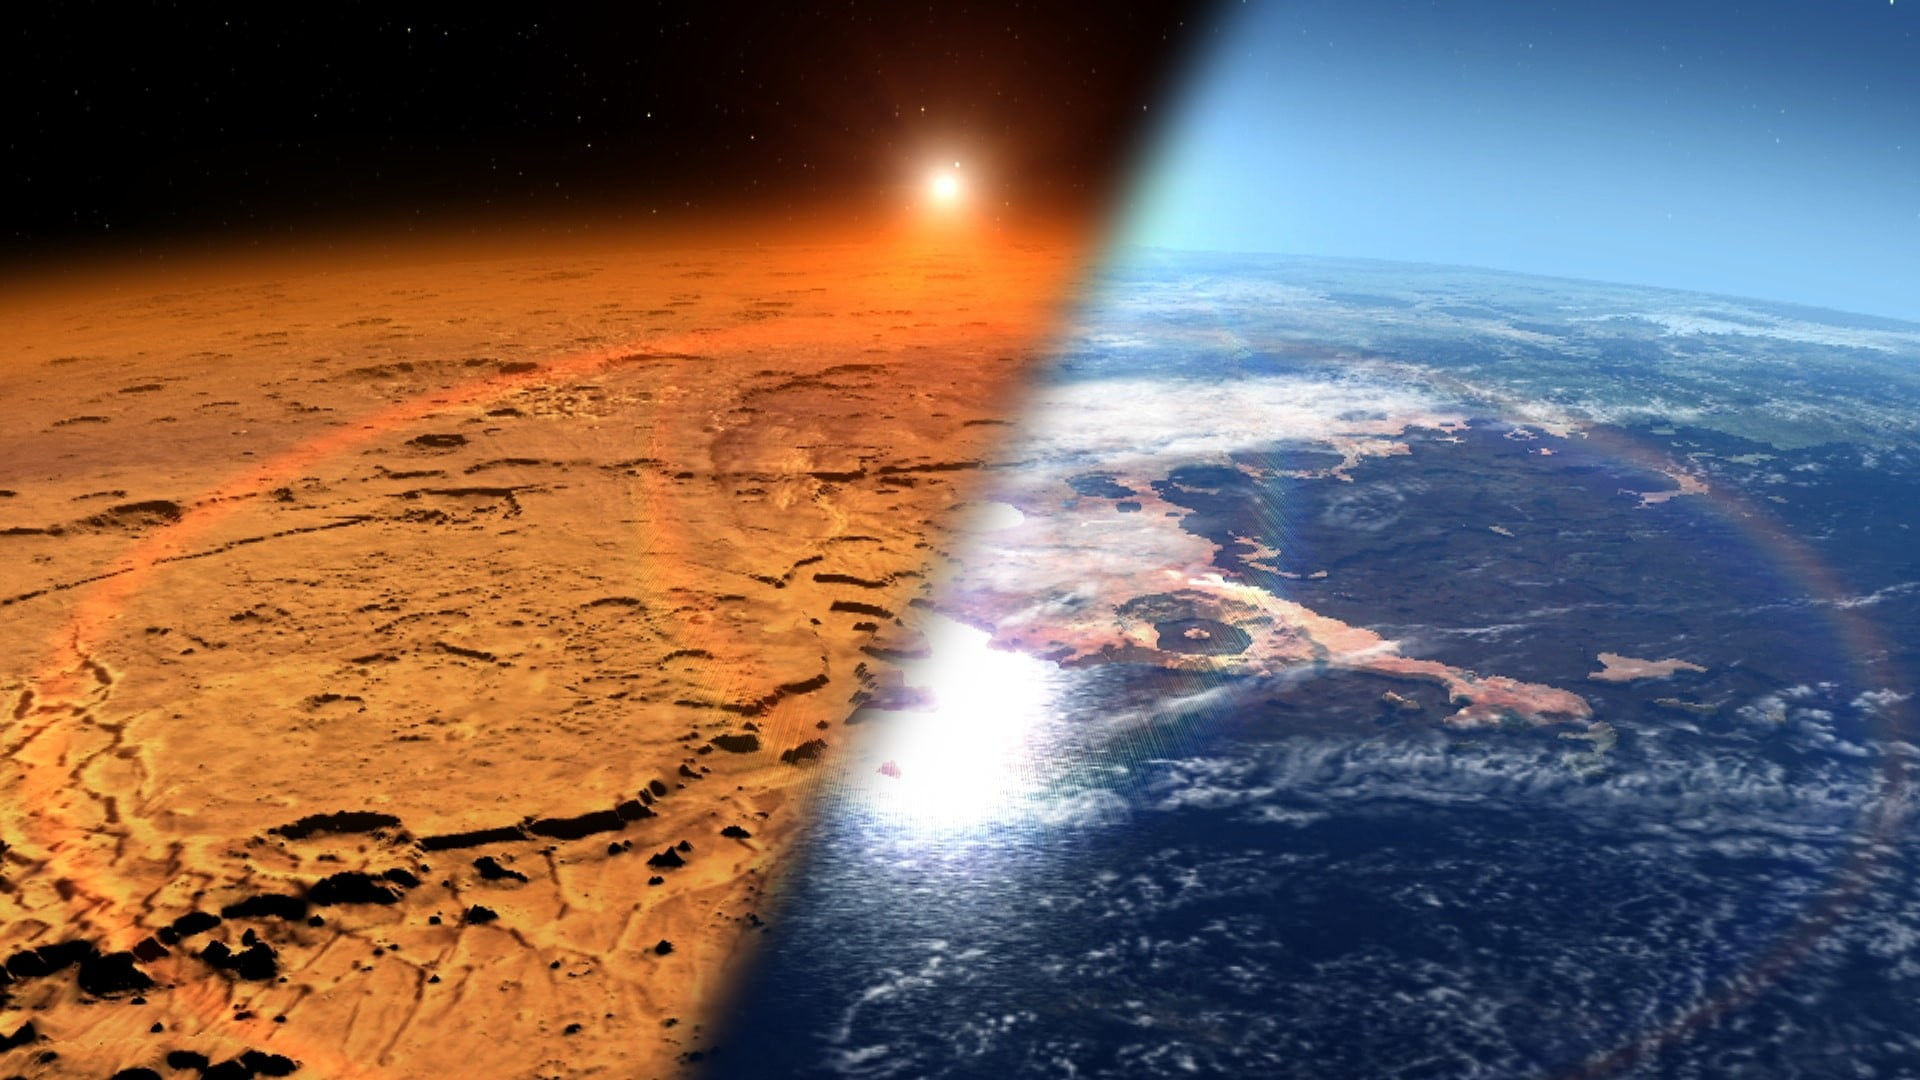 Mars was once an ocean-covered planet with a thick atmosphere like Earth's